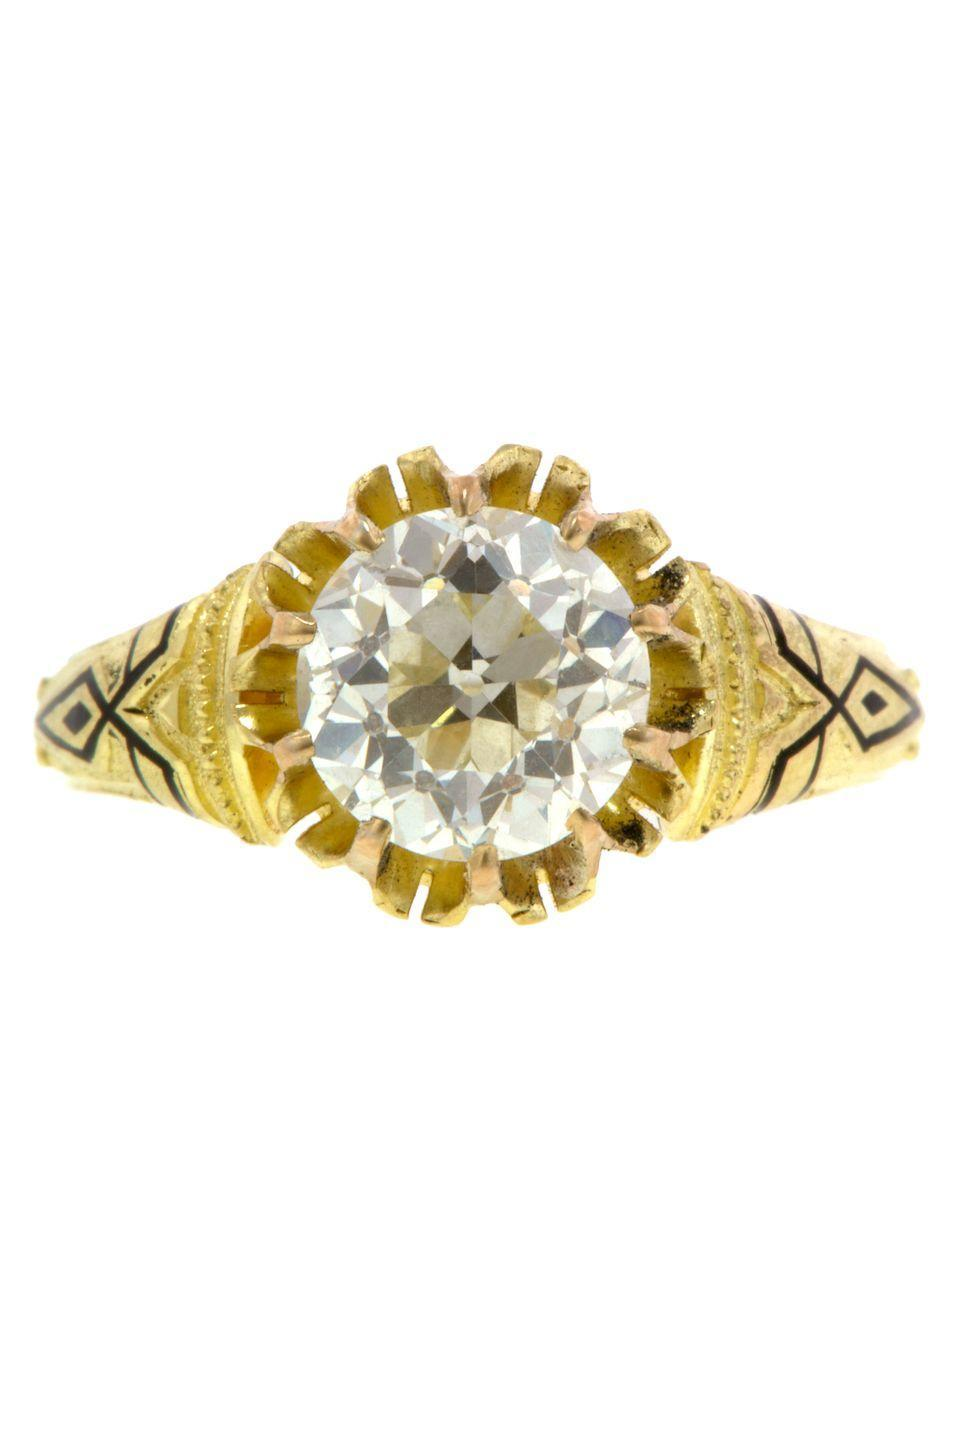 "<p><strong><em>Doyle & Doyle </em></strong><em>Old European Cut Diamond Solitaire Engagement Ring With Black Enamel Detail, circa 1870, </em><em>$22,000, <a href=""http://www.doyledoyle.com/099288r"" rel=""nofollow noopener"" target=""_blank"" data-ylk=""slk:doyledoyle.com"" class=""link rapid-noclick-resp"">doyledoyle.com</a><br></em></p><p><a class=""link rapid-noclick-resp"" href=""http://www.doyledoyle.com/099288r"" rel=""nofollow noopener"" target=""_blank"" data-ylk=""slk:SHOP"">SHOP</a></p>"